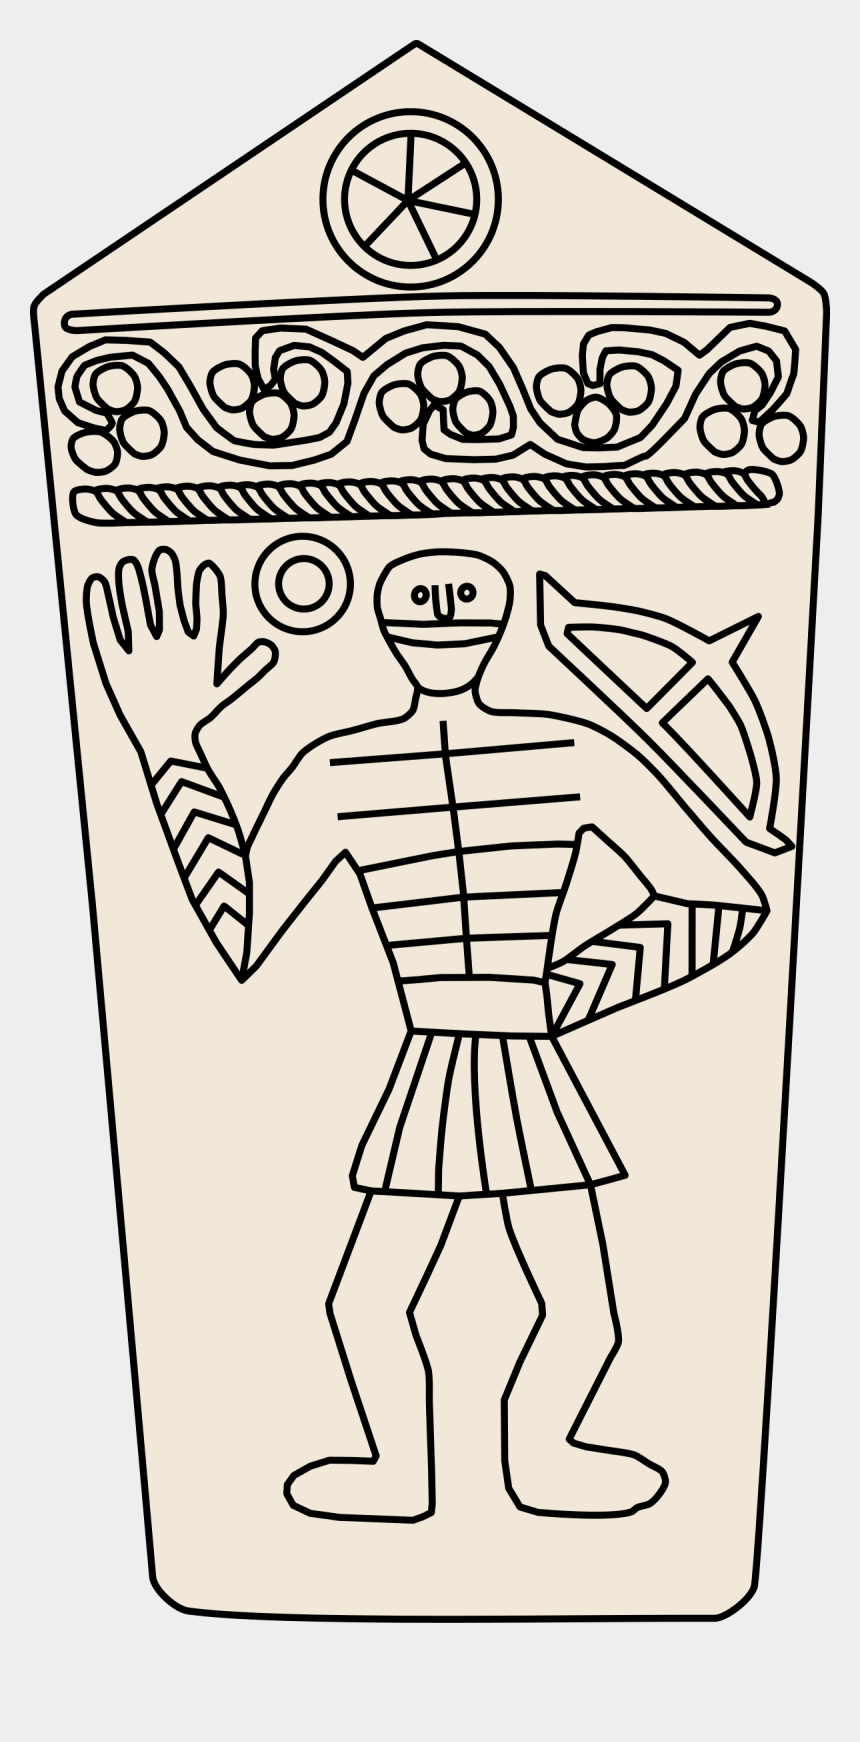 tombstone clipart, Cartoons - Tombstone Drawing Png - Bosnian Tombstone